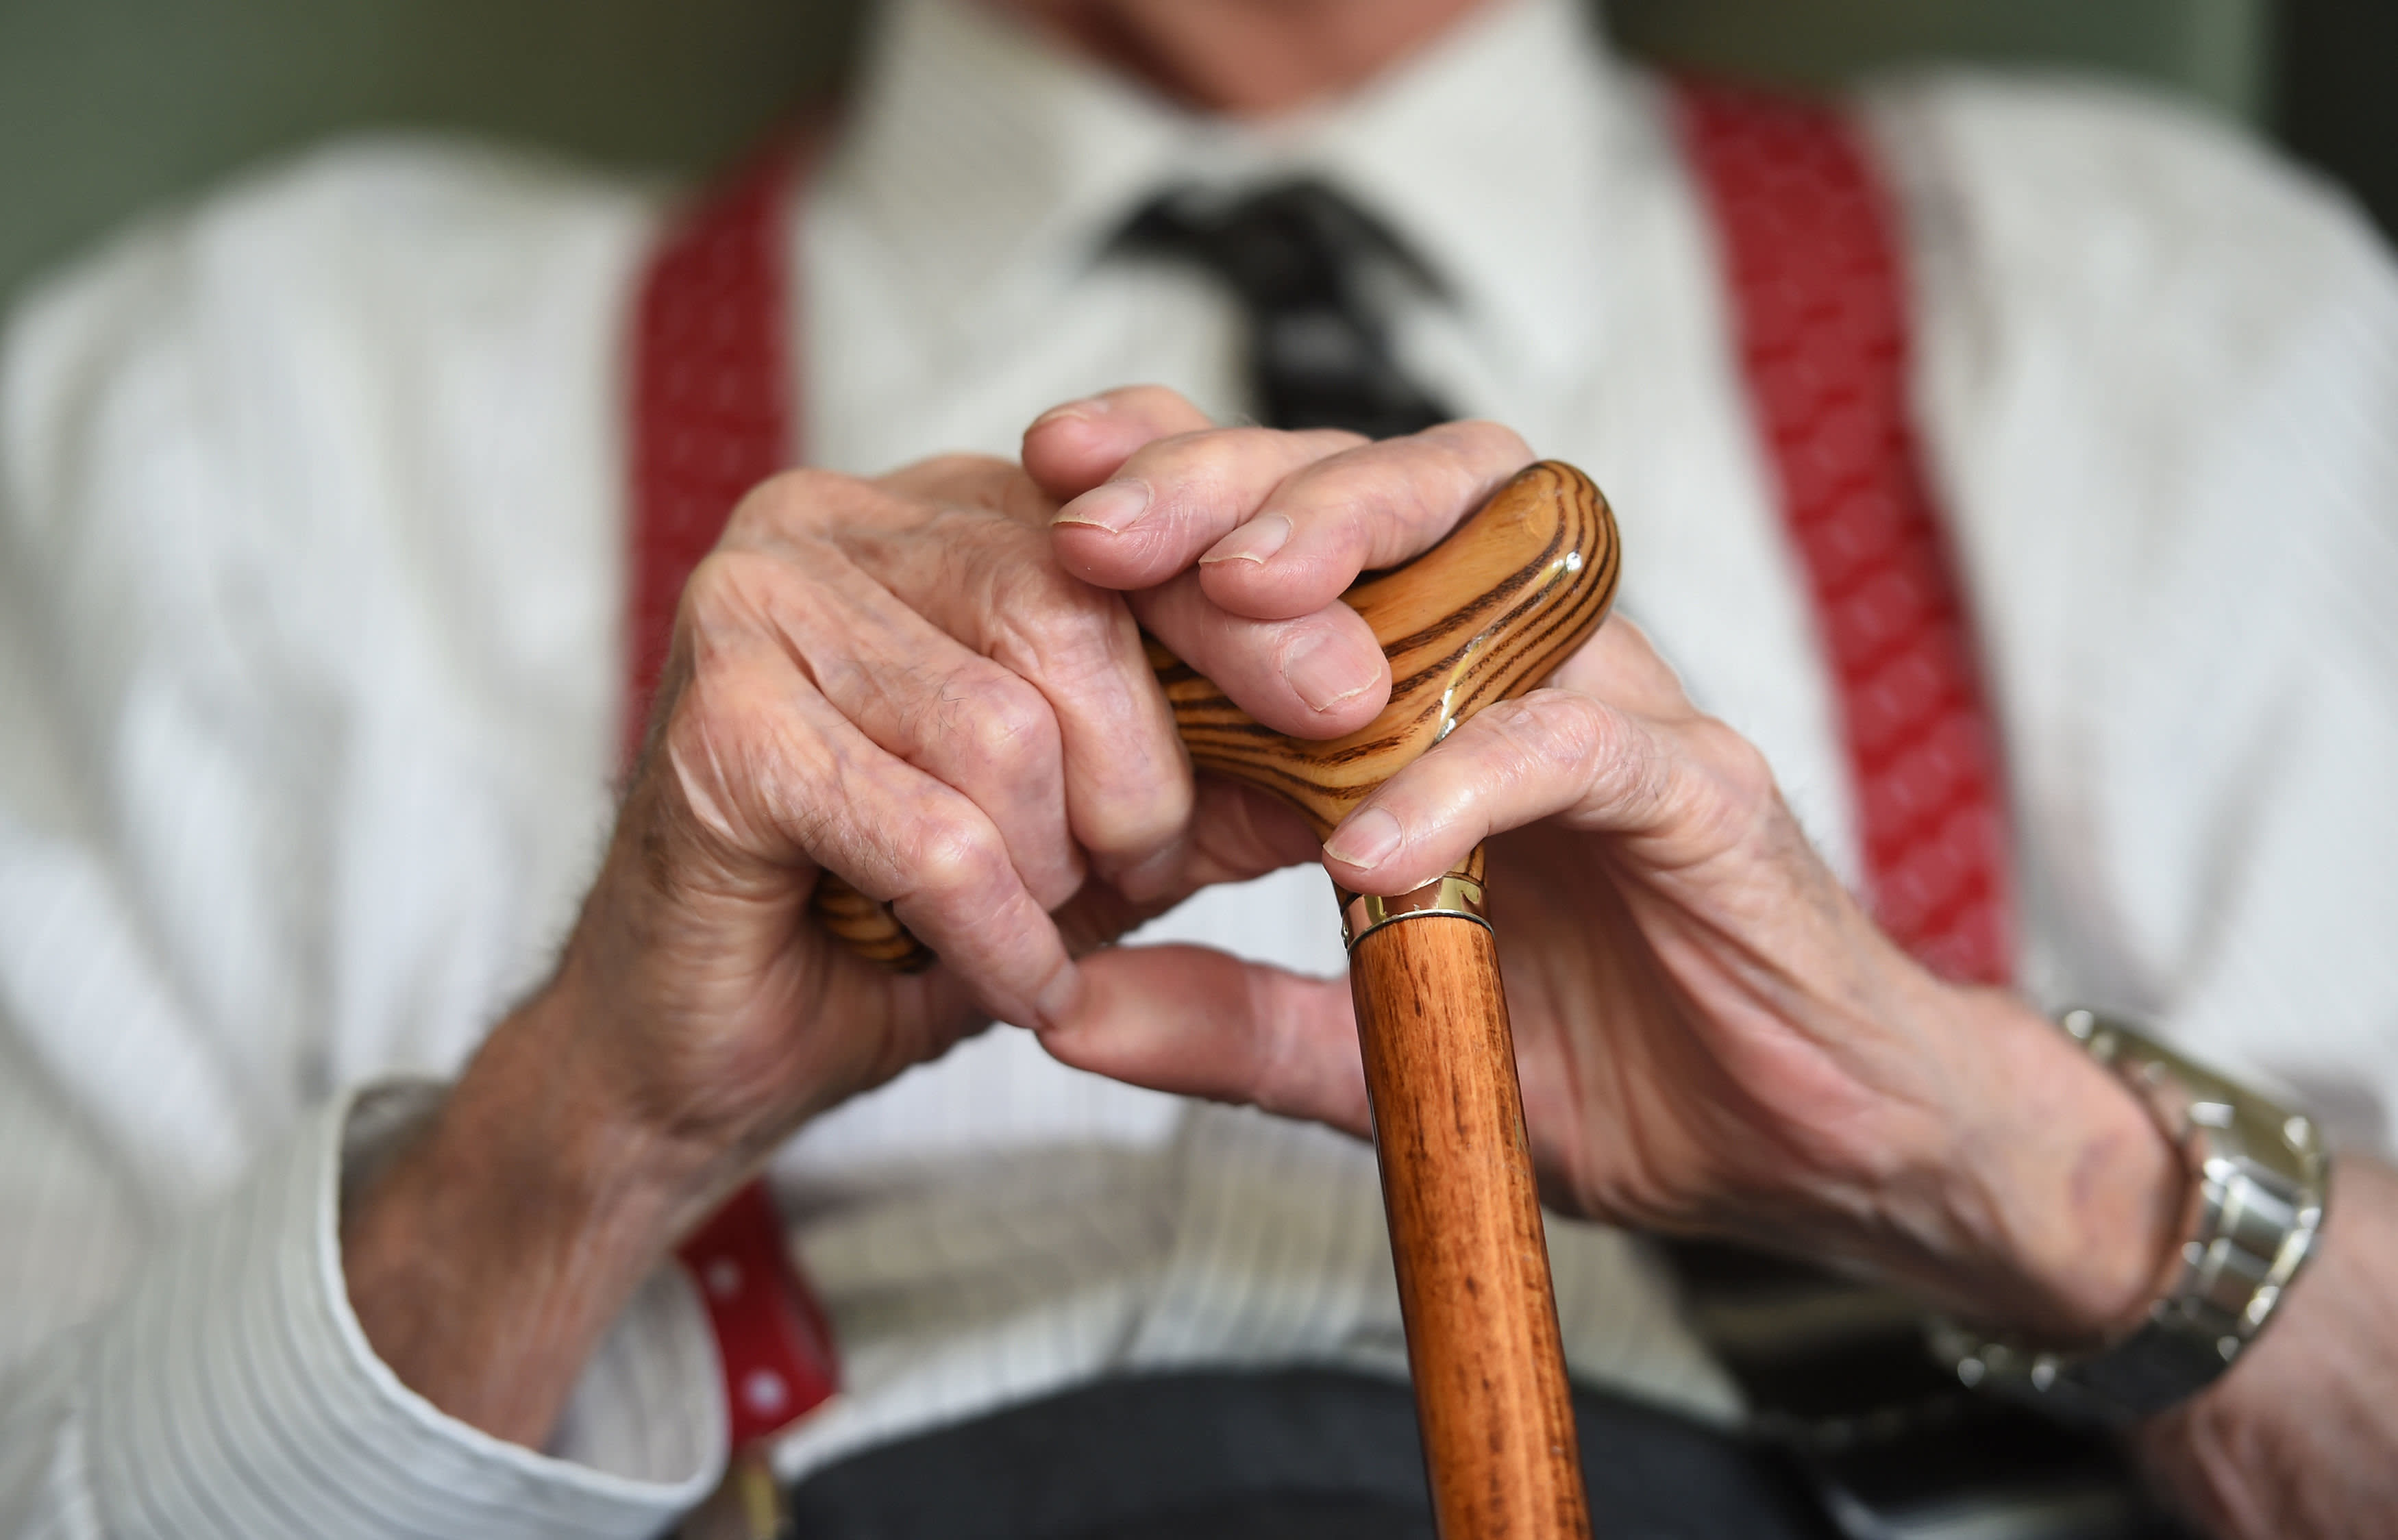 'We need action': Industry responds to social care plans